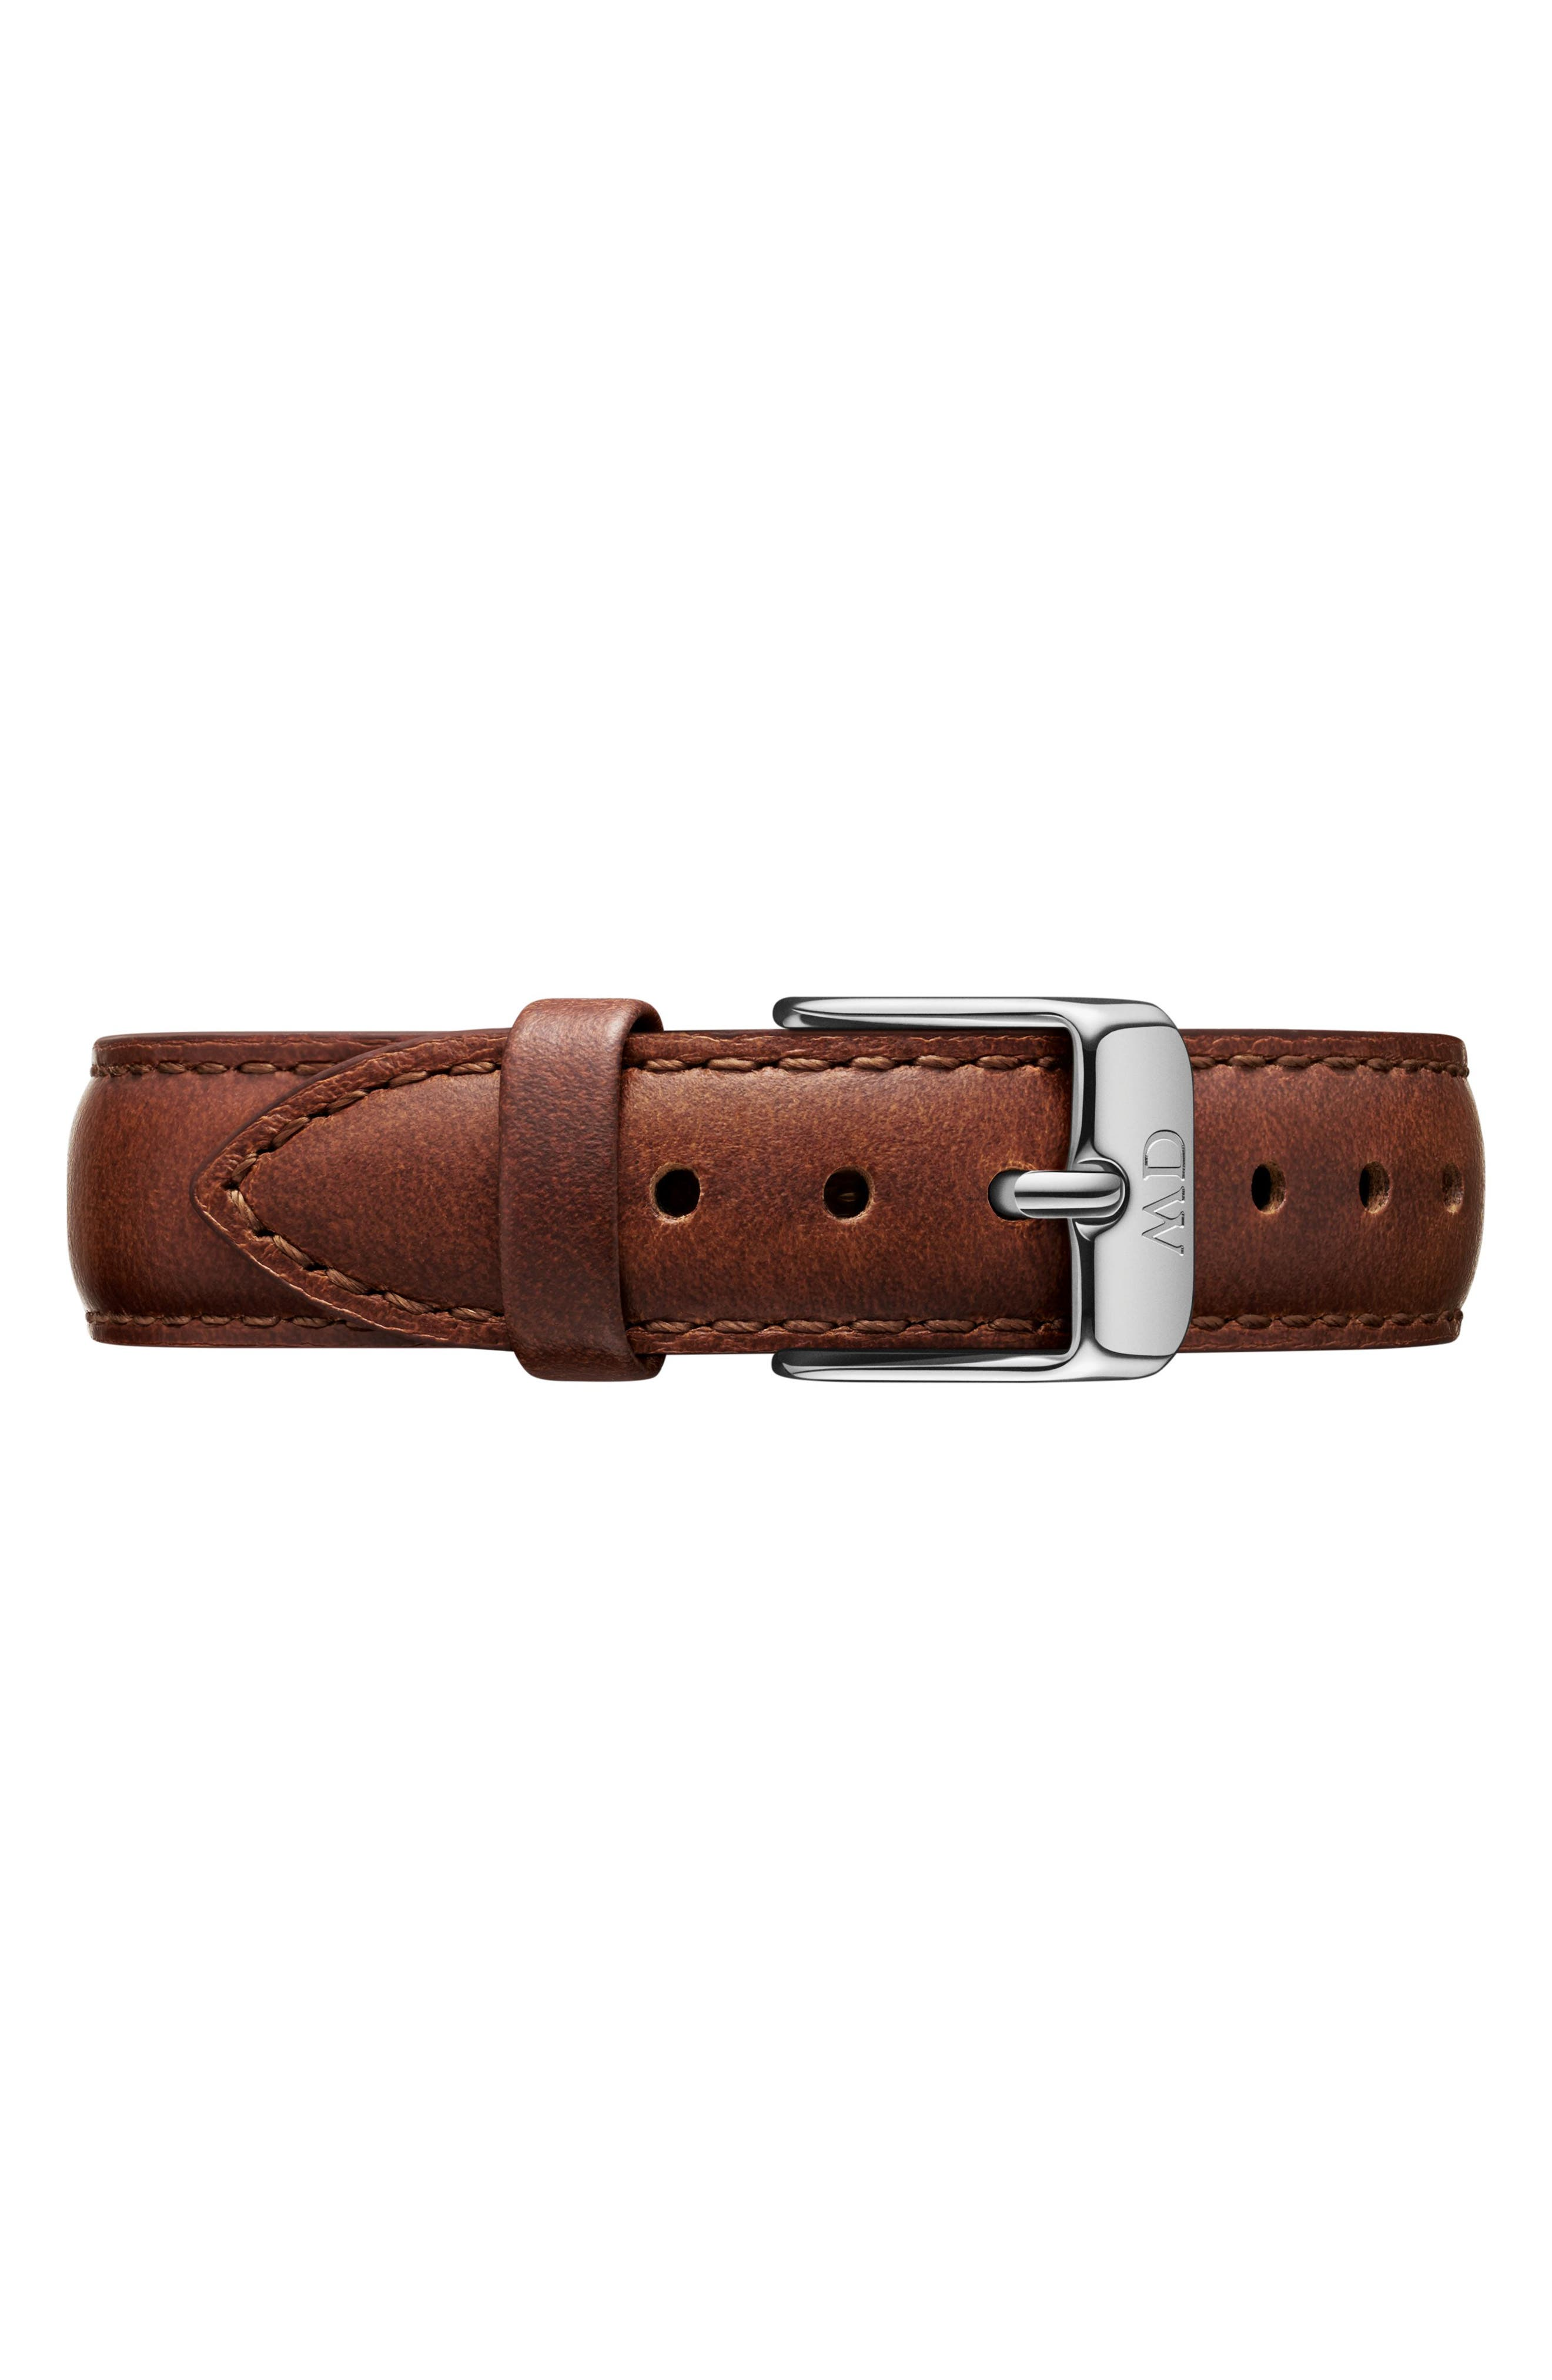 14mm Petite St Mawes Leather Watch Band